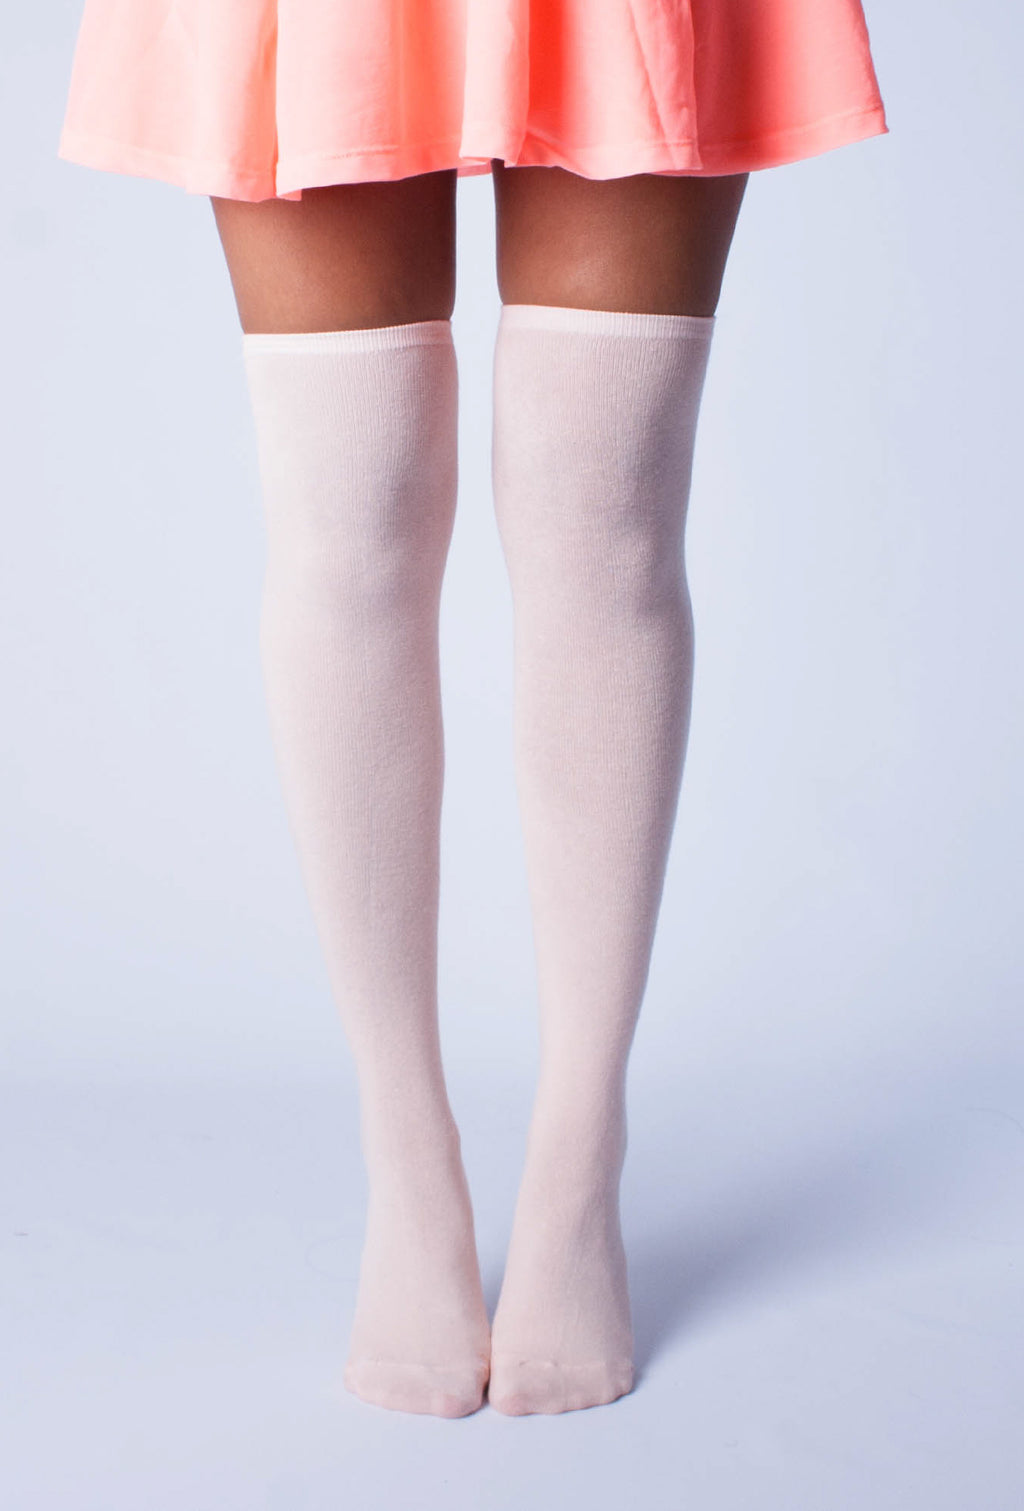 Solid Light Pink Thigh High Socks